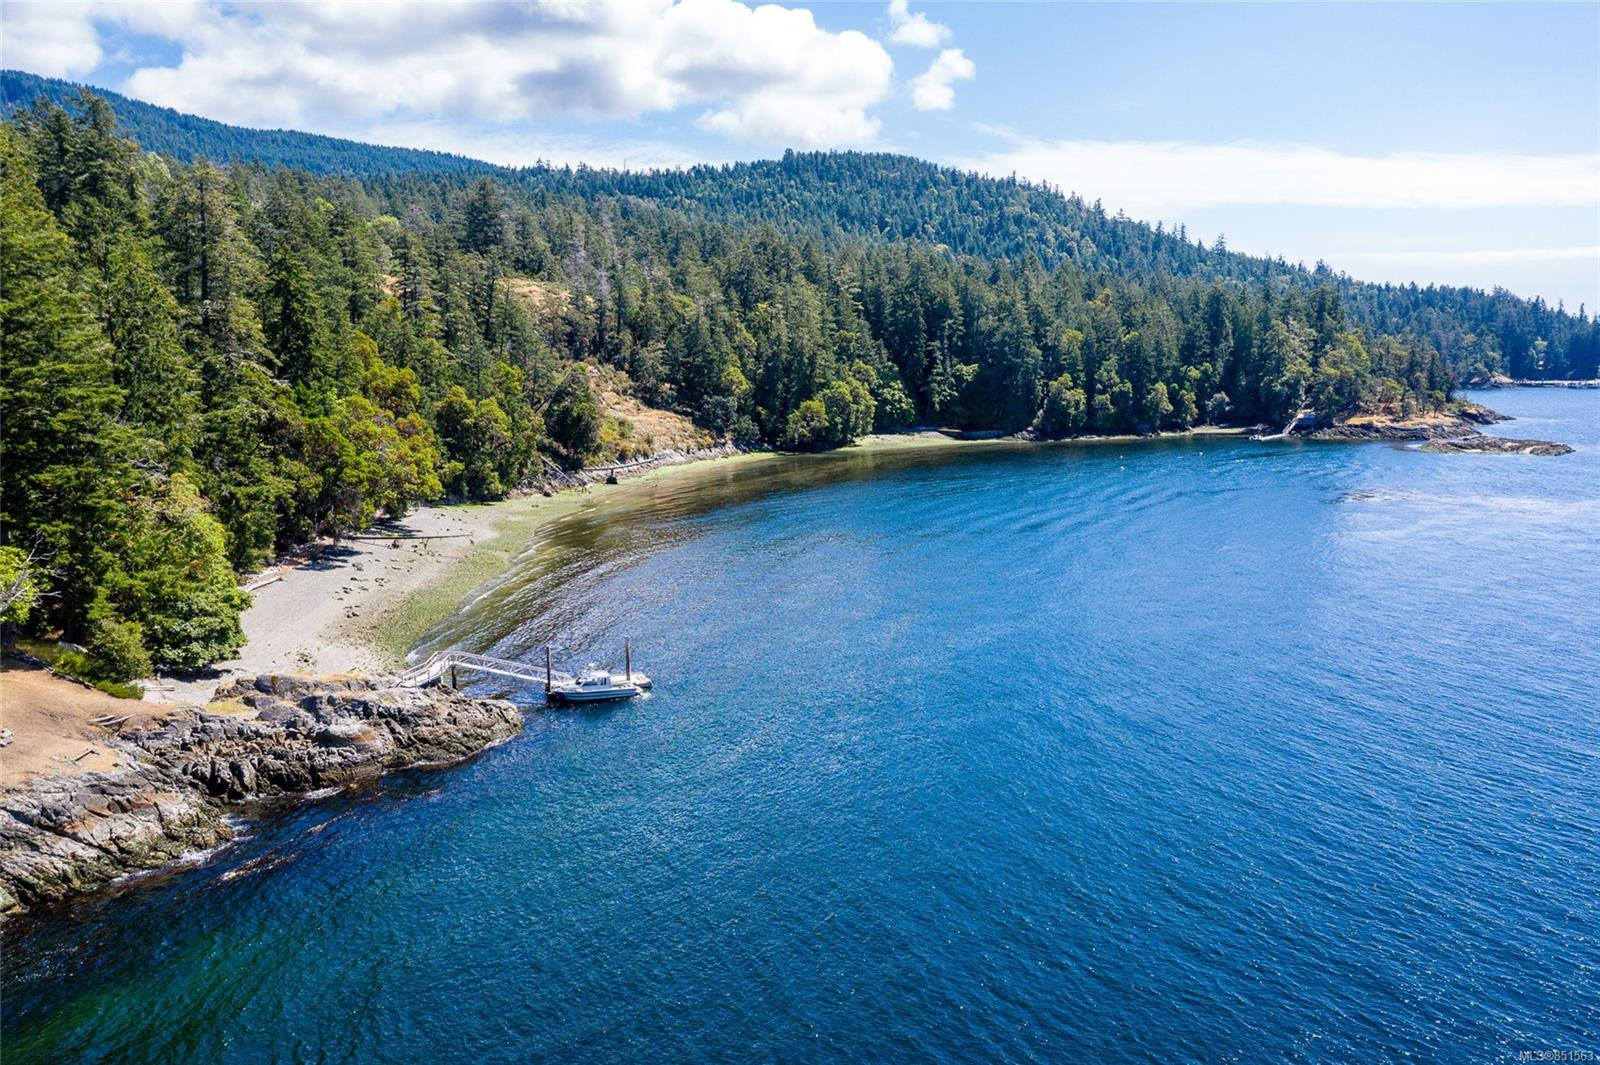 Main Photo: 230 Smith Rd in : GI Salt Spring Single Family Detached for sale (Gulf Islands)  : MLS®# 851563